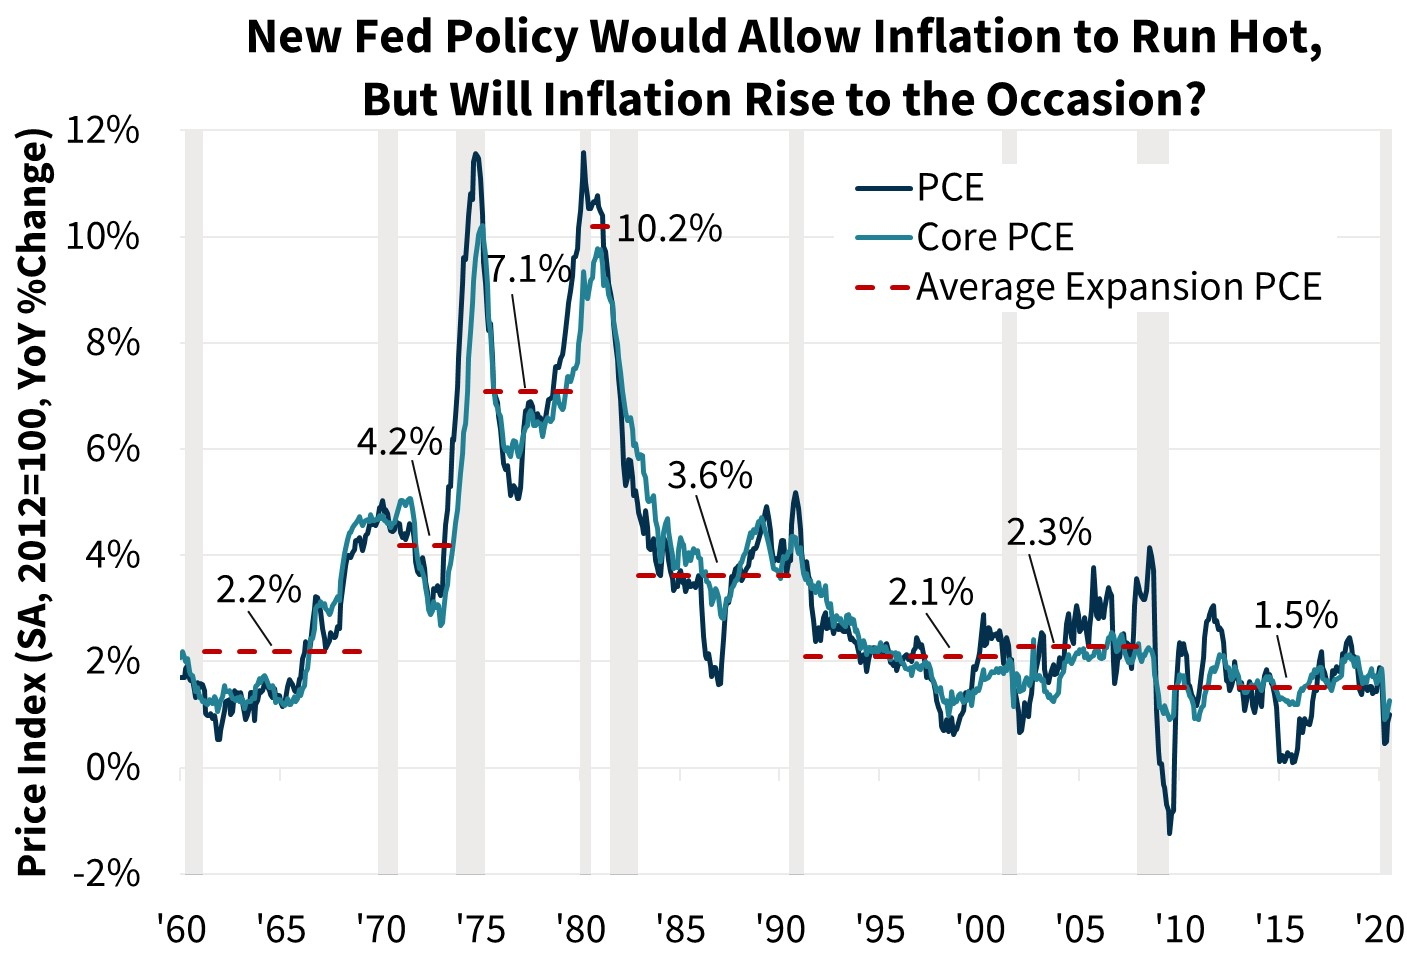 New Fed Policy Would Allow Inflation to Run Hot, But Will Inflation Rise to the Occasion